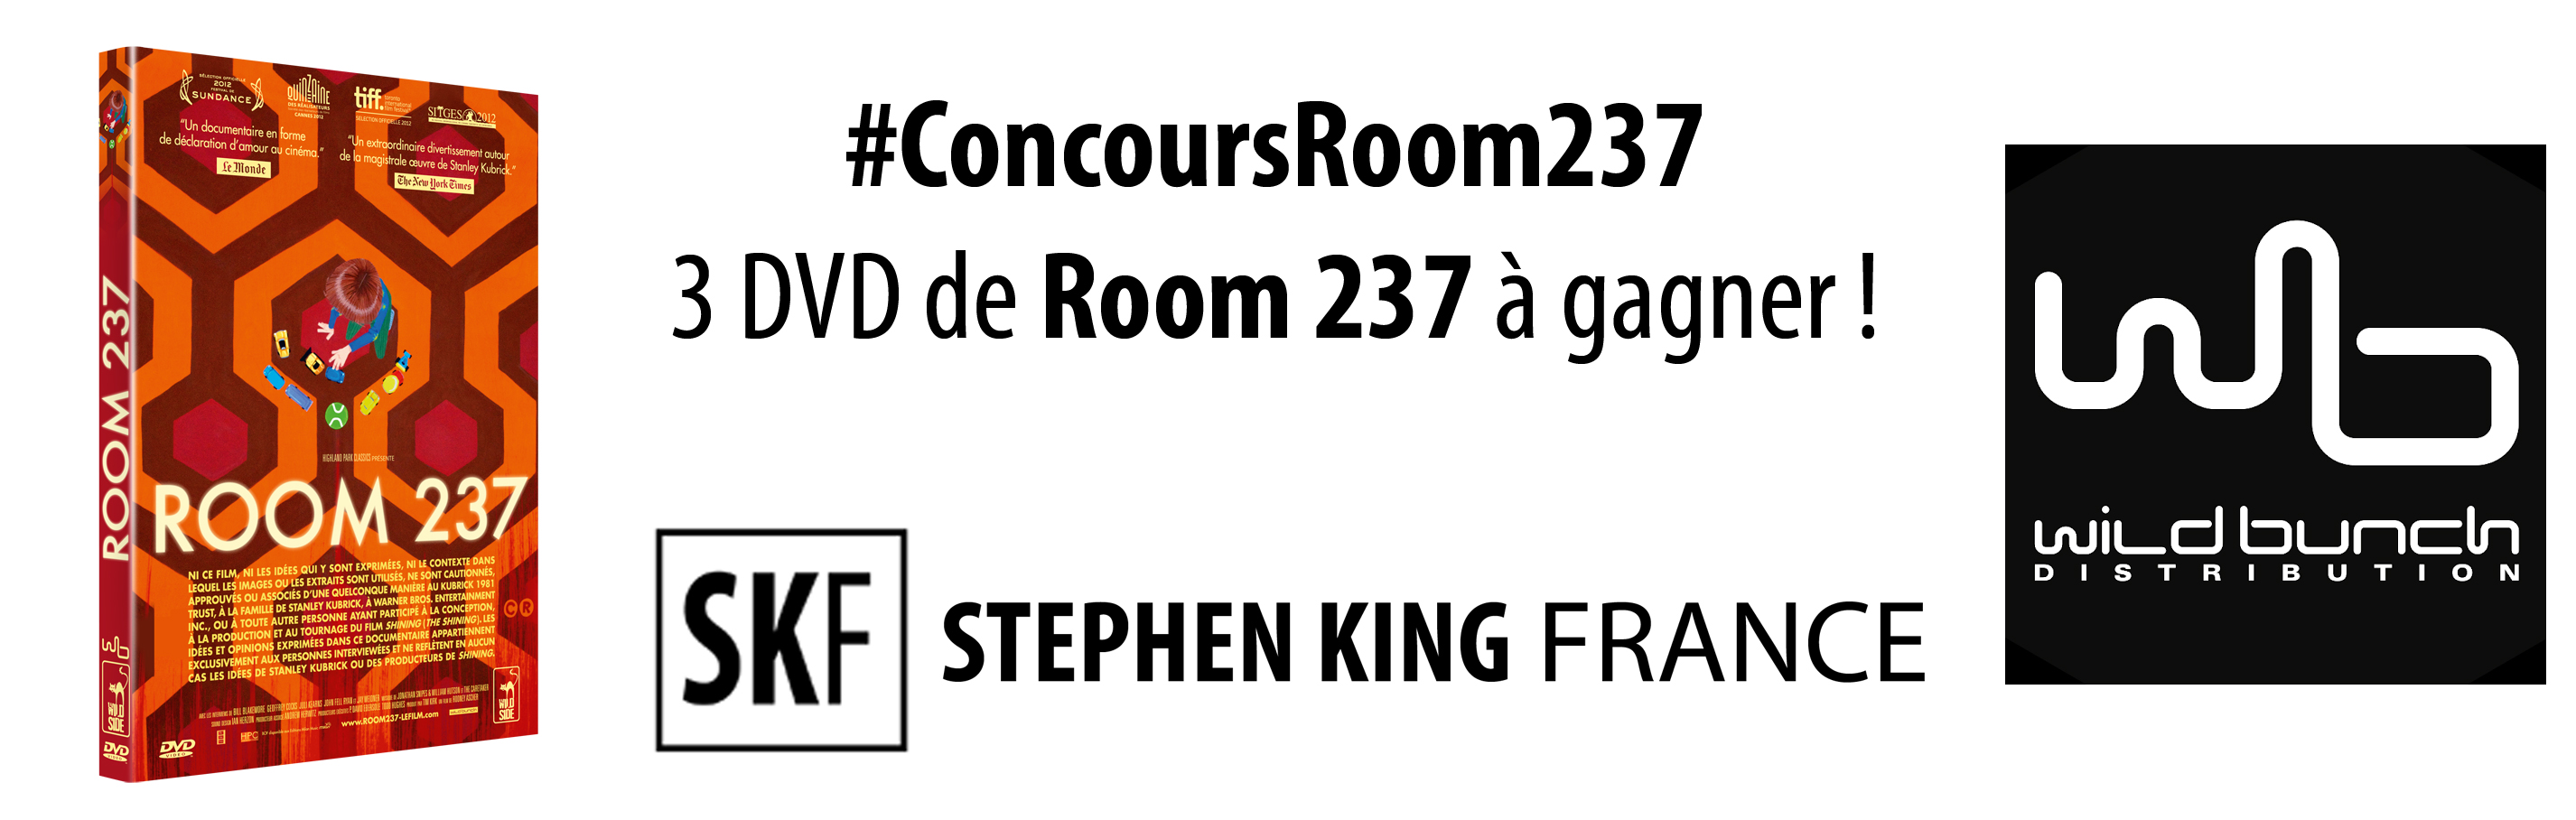 CONCOURS : ROOM 237, chez Stephen King France ConcoursRoom237